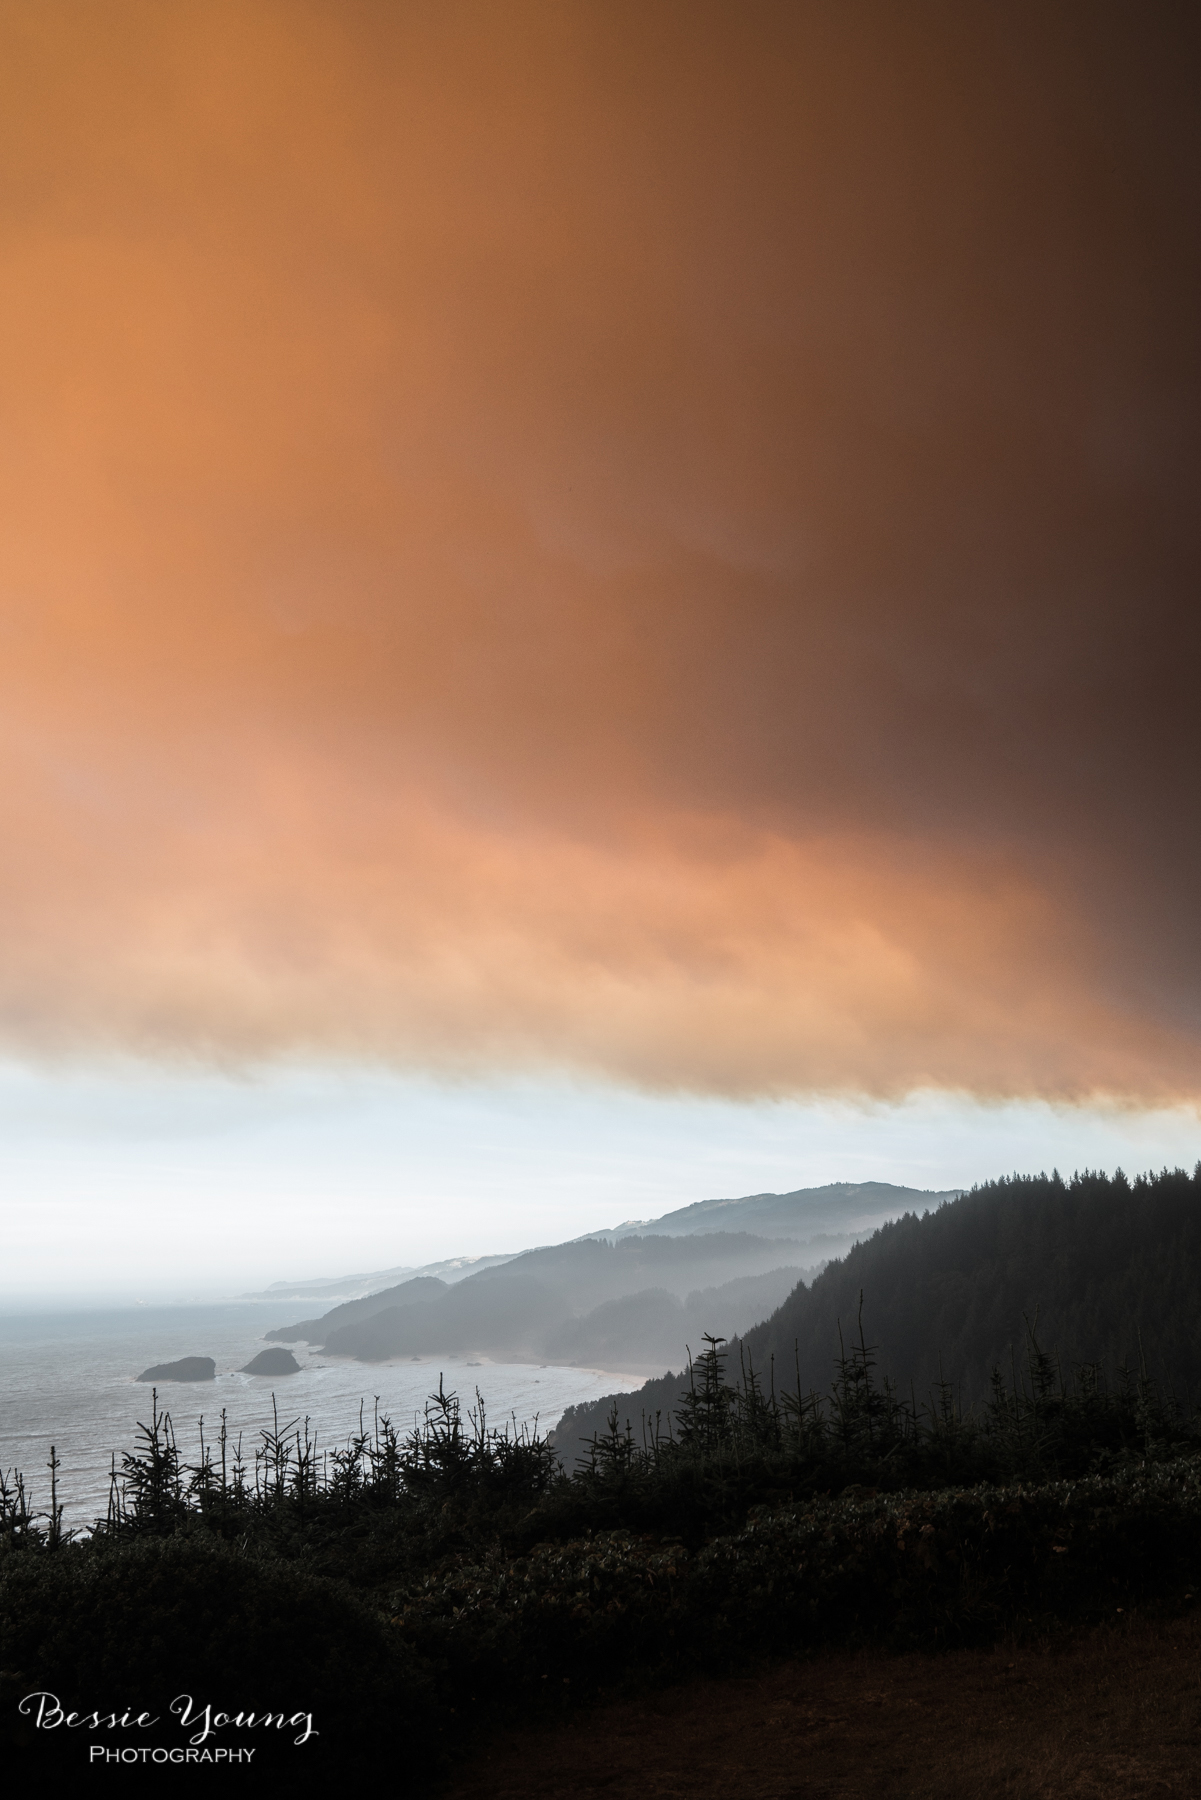 Chetco Bar Fire Brookings Oregon 2017 - Bessie Young Photography-4.jpg